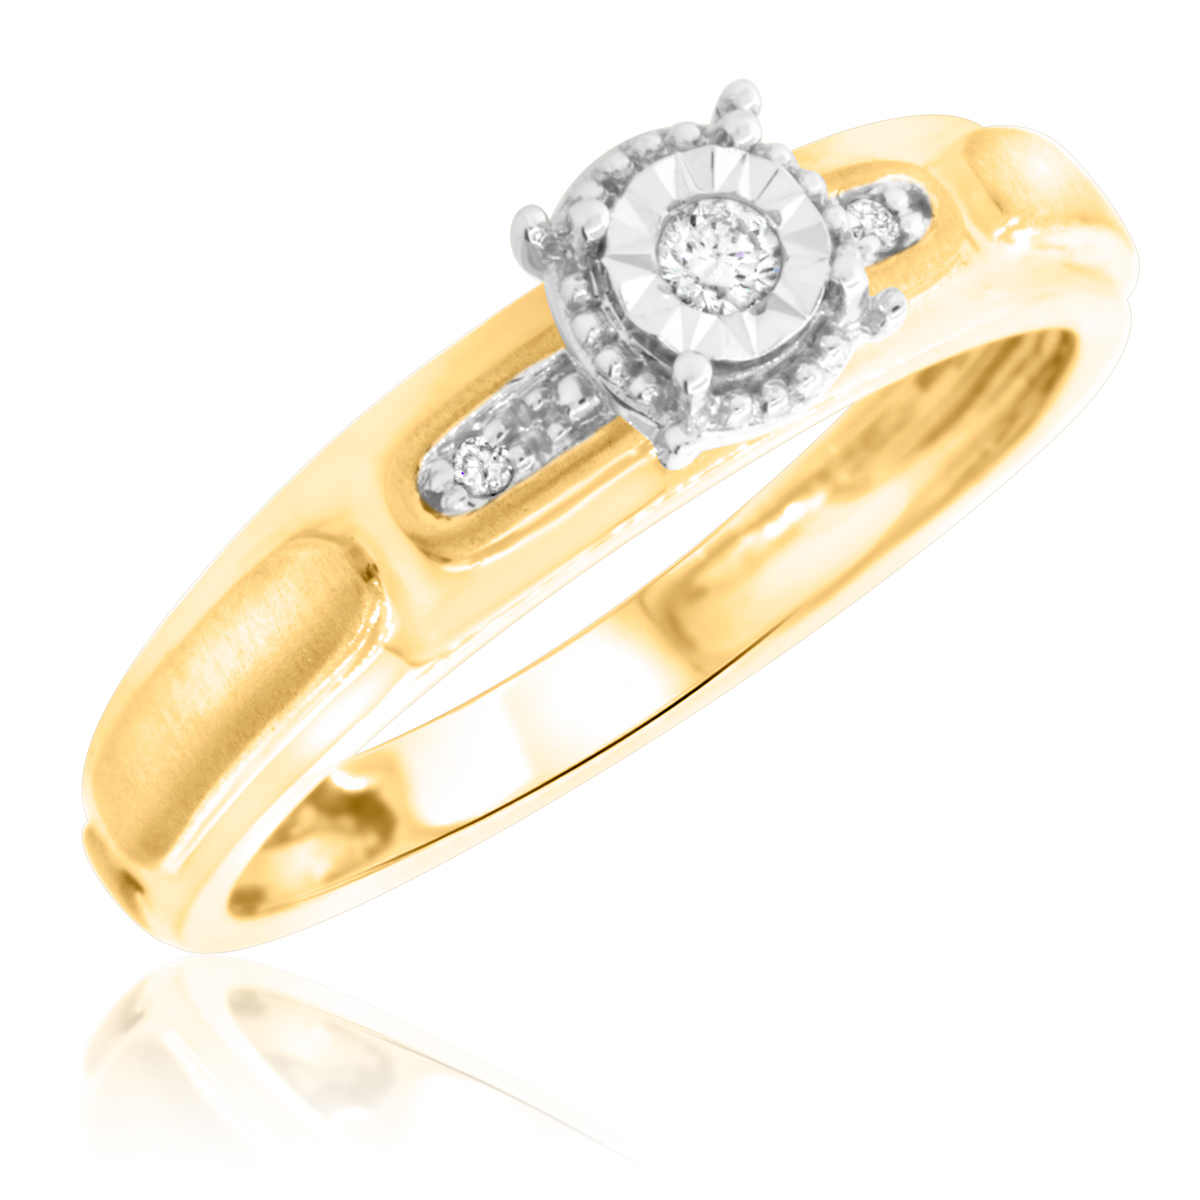 1/20 Carat T.W. Round Cut Diamond Ladies Engagement Ring 14K Yellow Gold